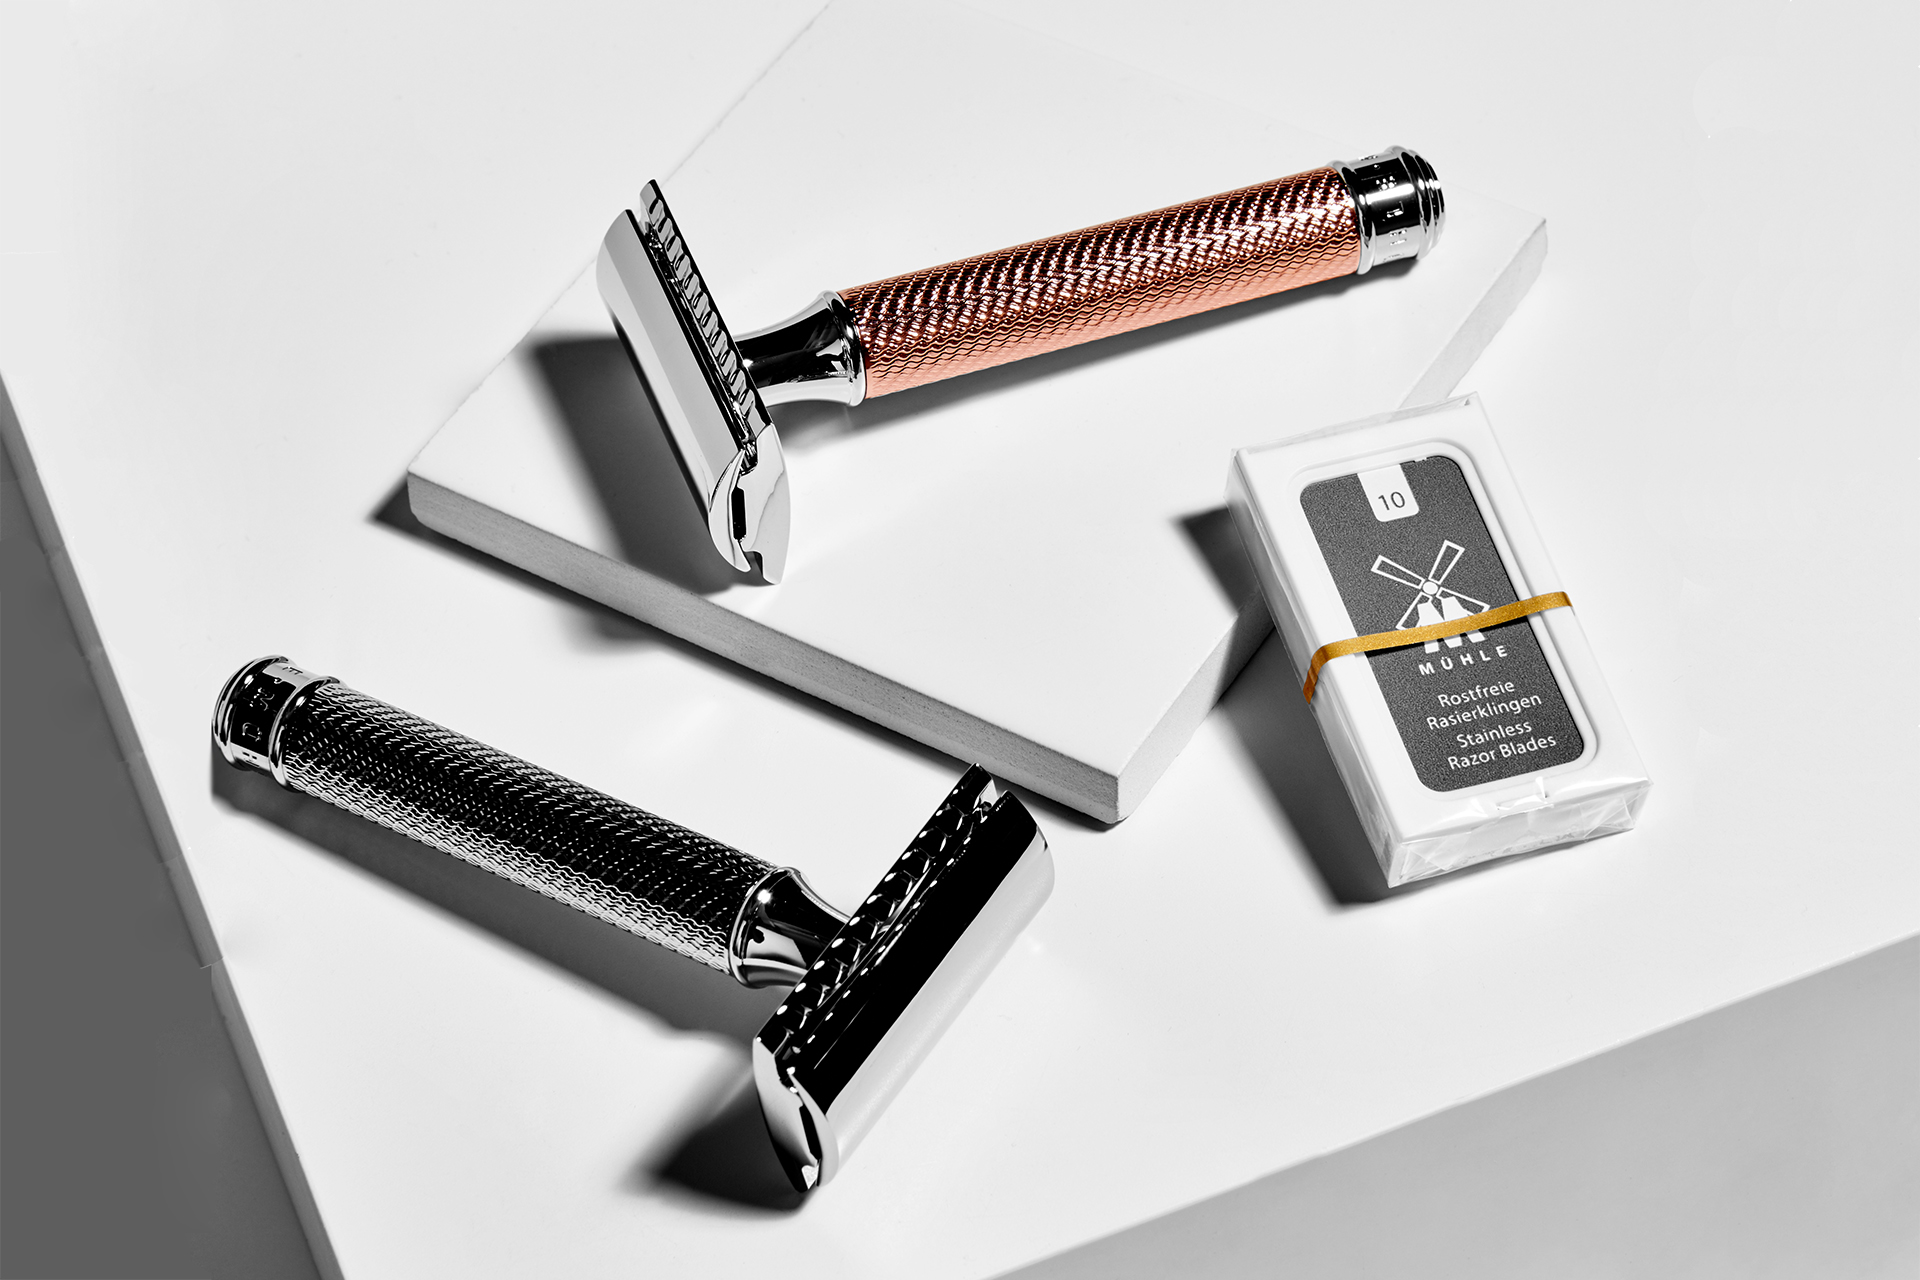 Switch to reusable products like the Muhle Silver & Rose Gold Safety Razor | eco friendly reusable razors UK at organic beauty online store CONTENT Beauty